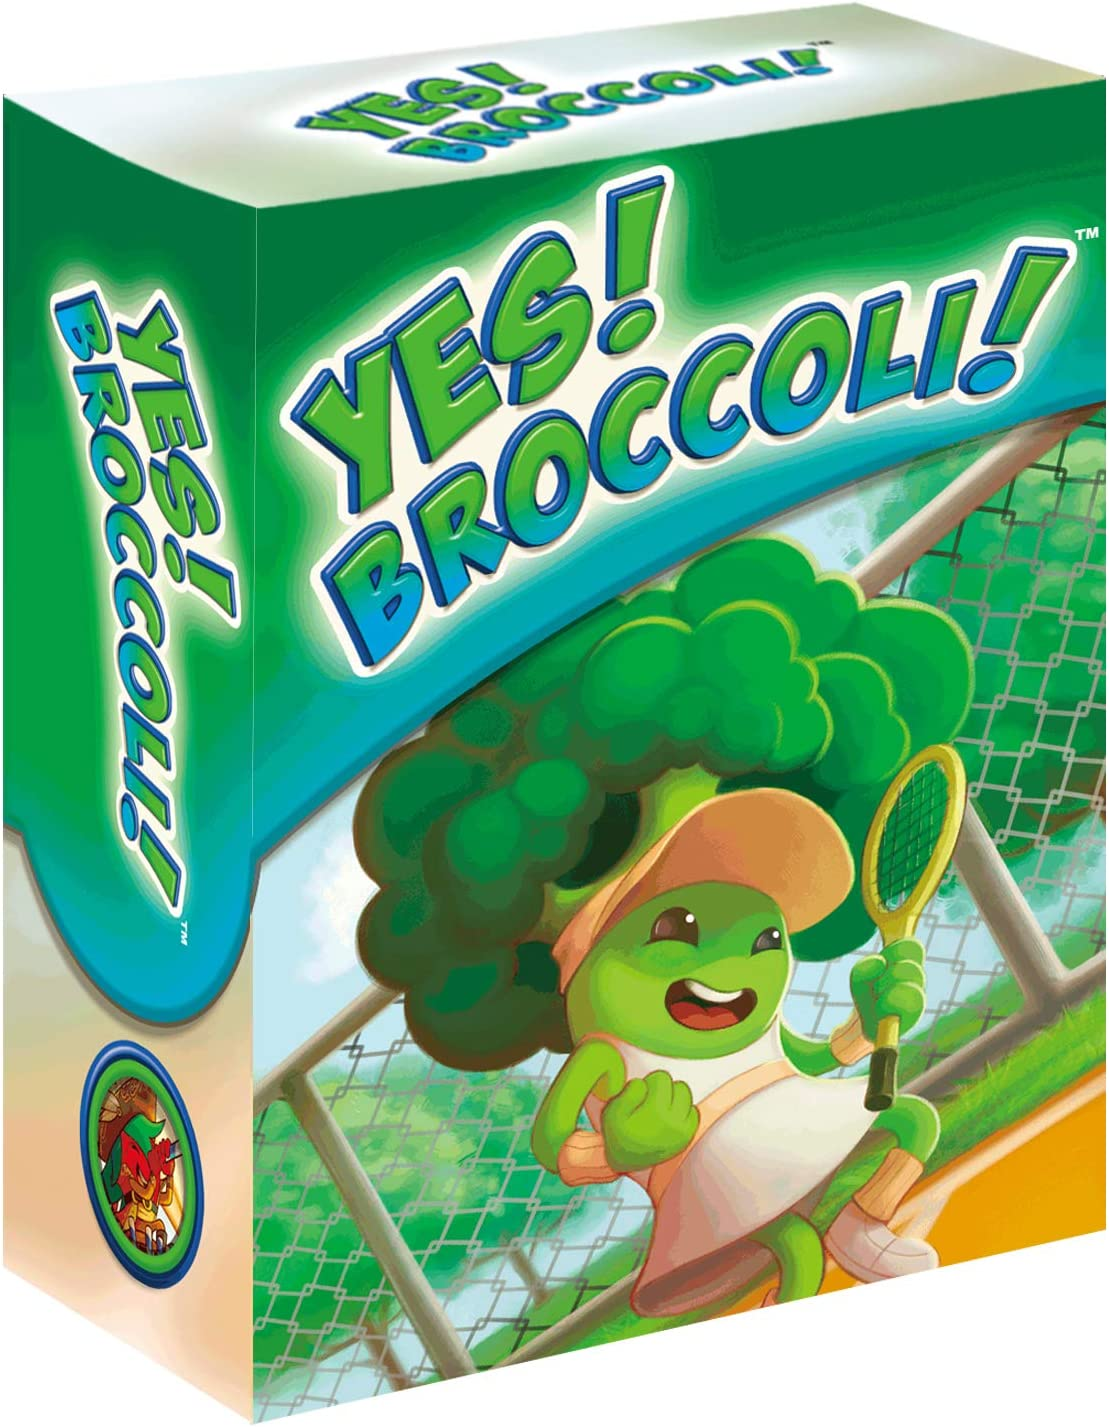 Yes! Broccoli!